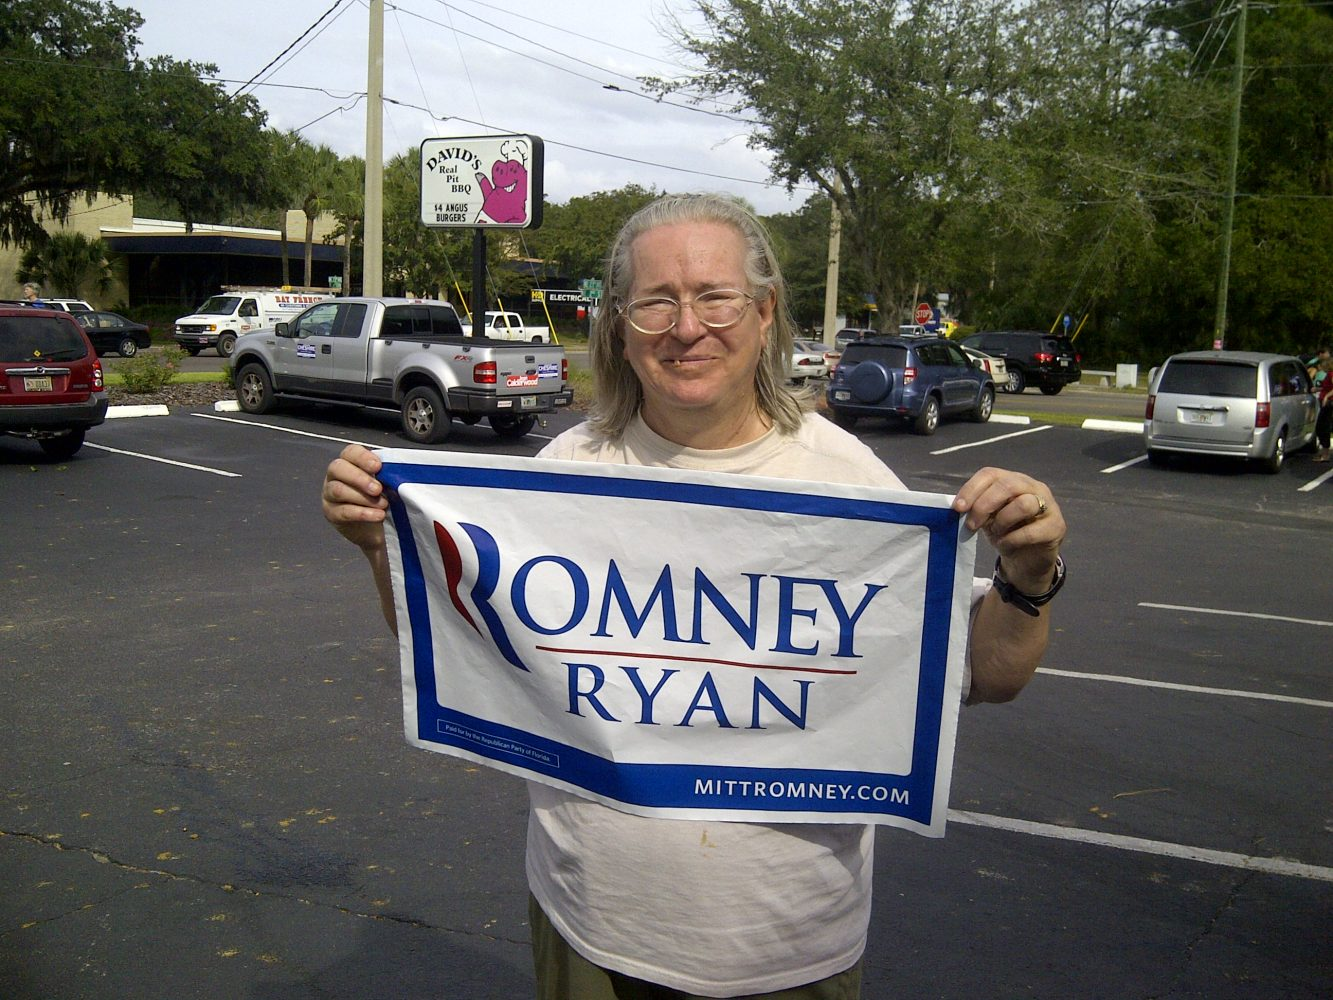 """Linda Holloway holds a Romney-Ryan campaign sign after Ann Romney's visit. """"I got to (shake) her hand,"""" Holloway said. """"I said we love you and God bless you."""" Holloway said she came out because she doesn't think Obama should be re-elected. """"I'm 200 percent for Romney,"""" she said."""